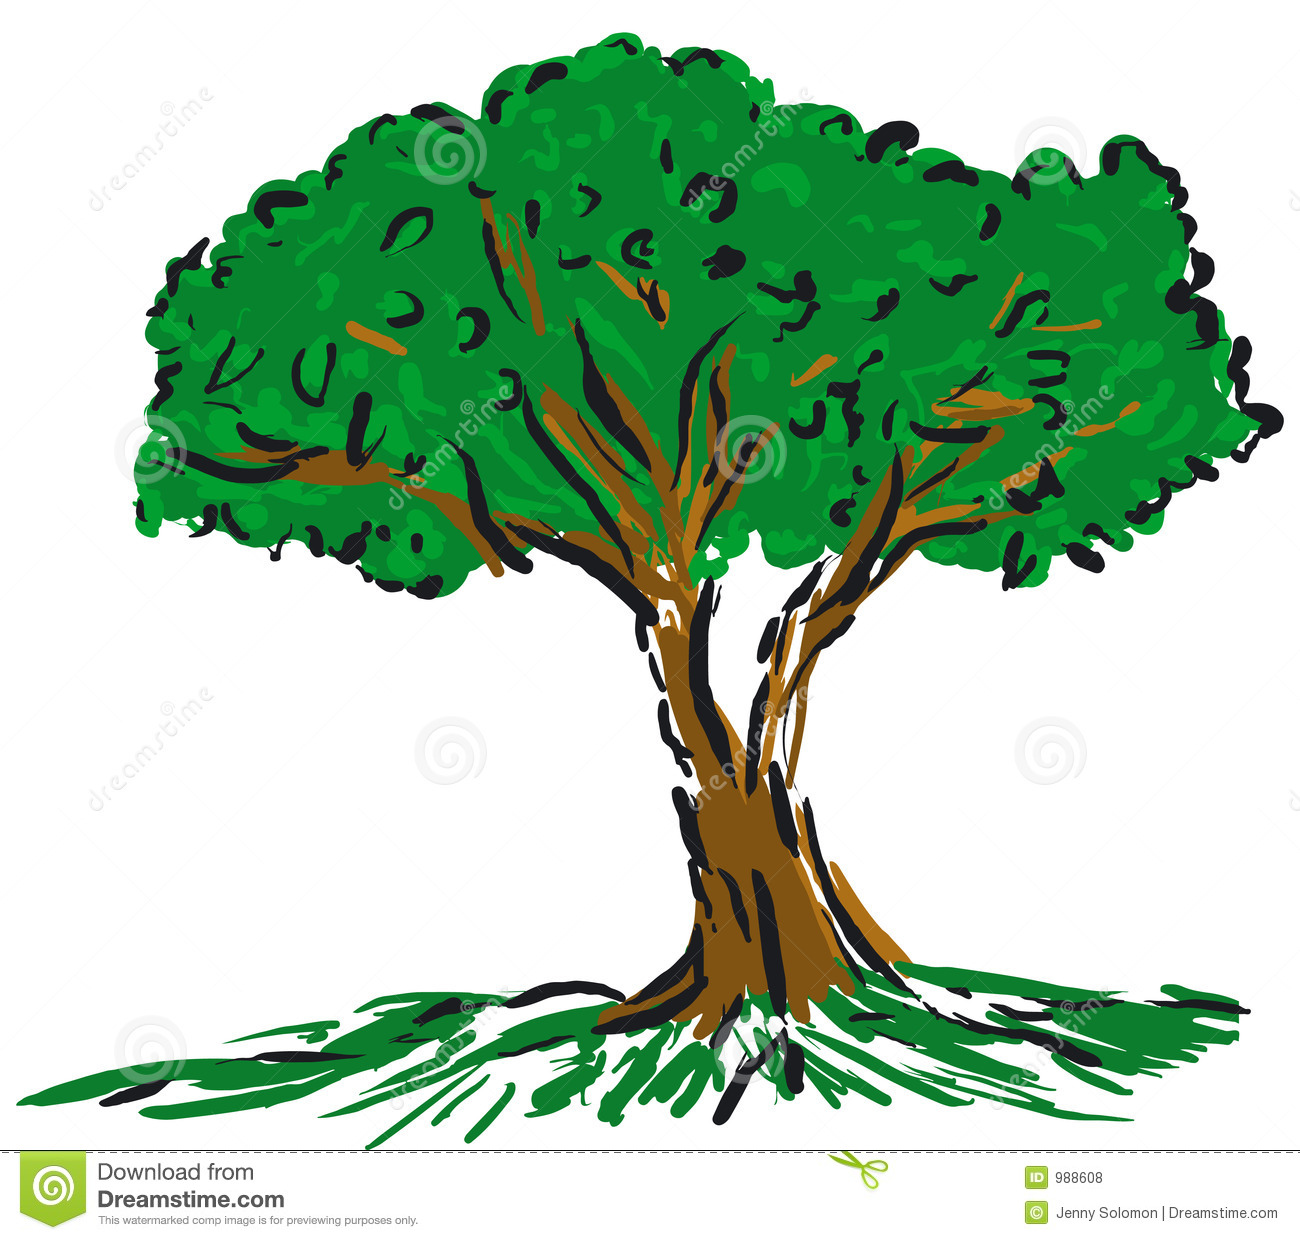 Cartoon Tree Stock Vector Illustration Of Digital Nature 988608 Collection of cartoon tree images (46). dreamstime com